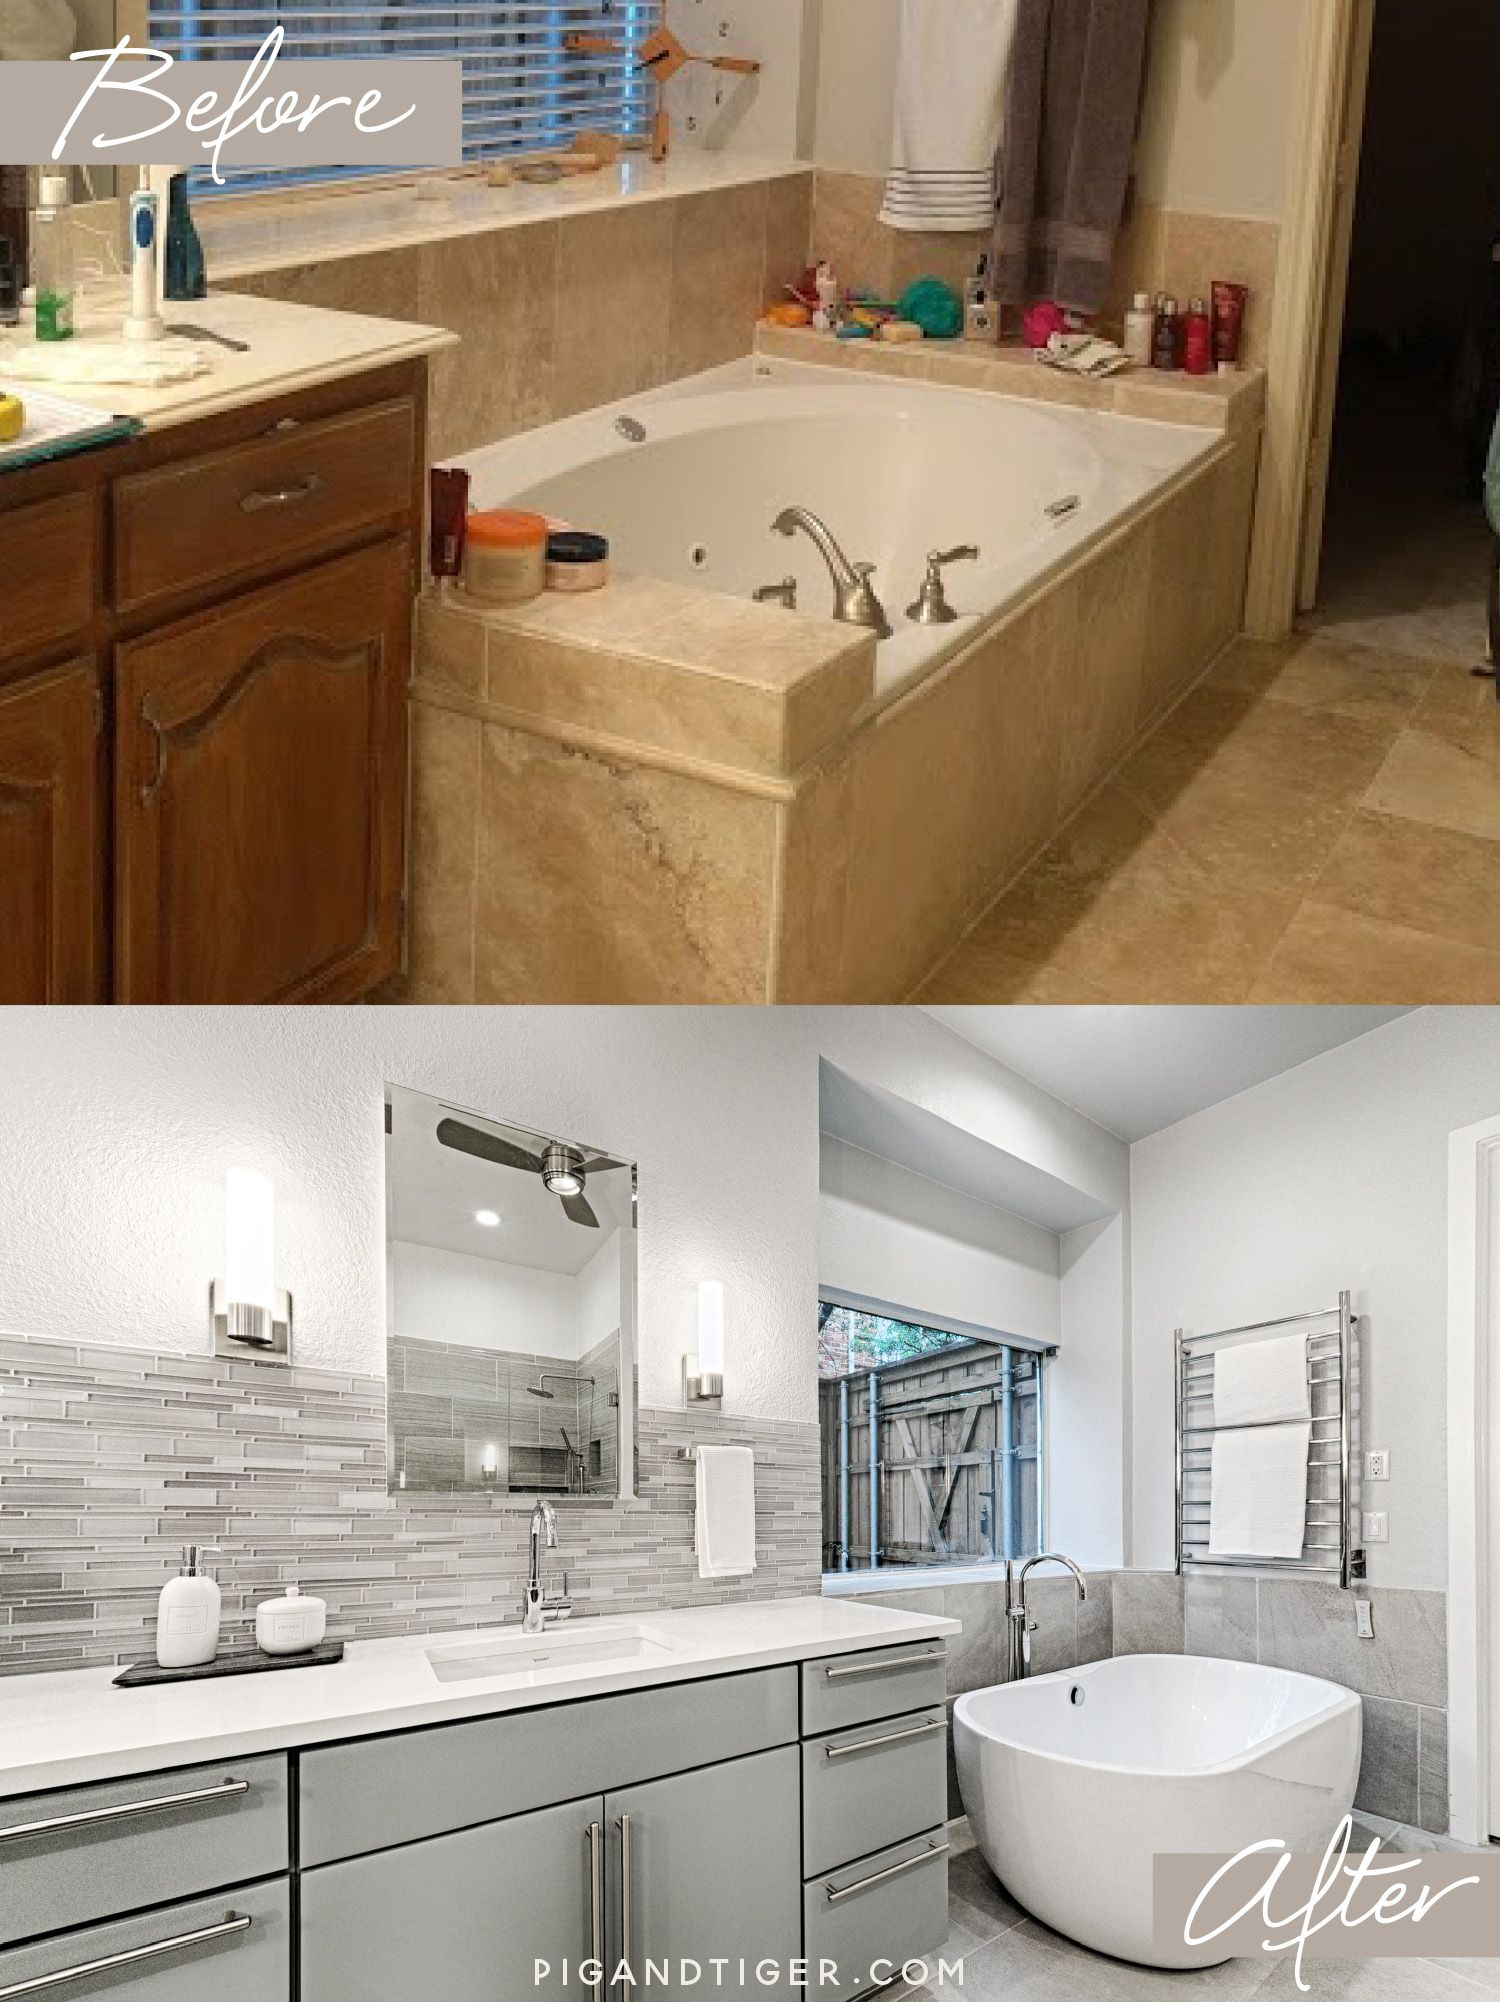 Bathroom Remodel With Freestanding Tub And Tub Filler Pig And - Bathroom remodel plano tx